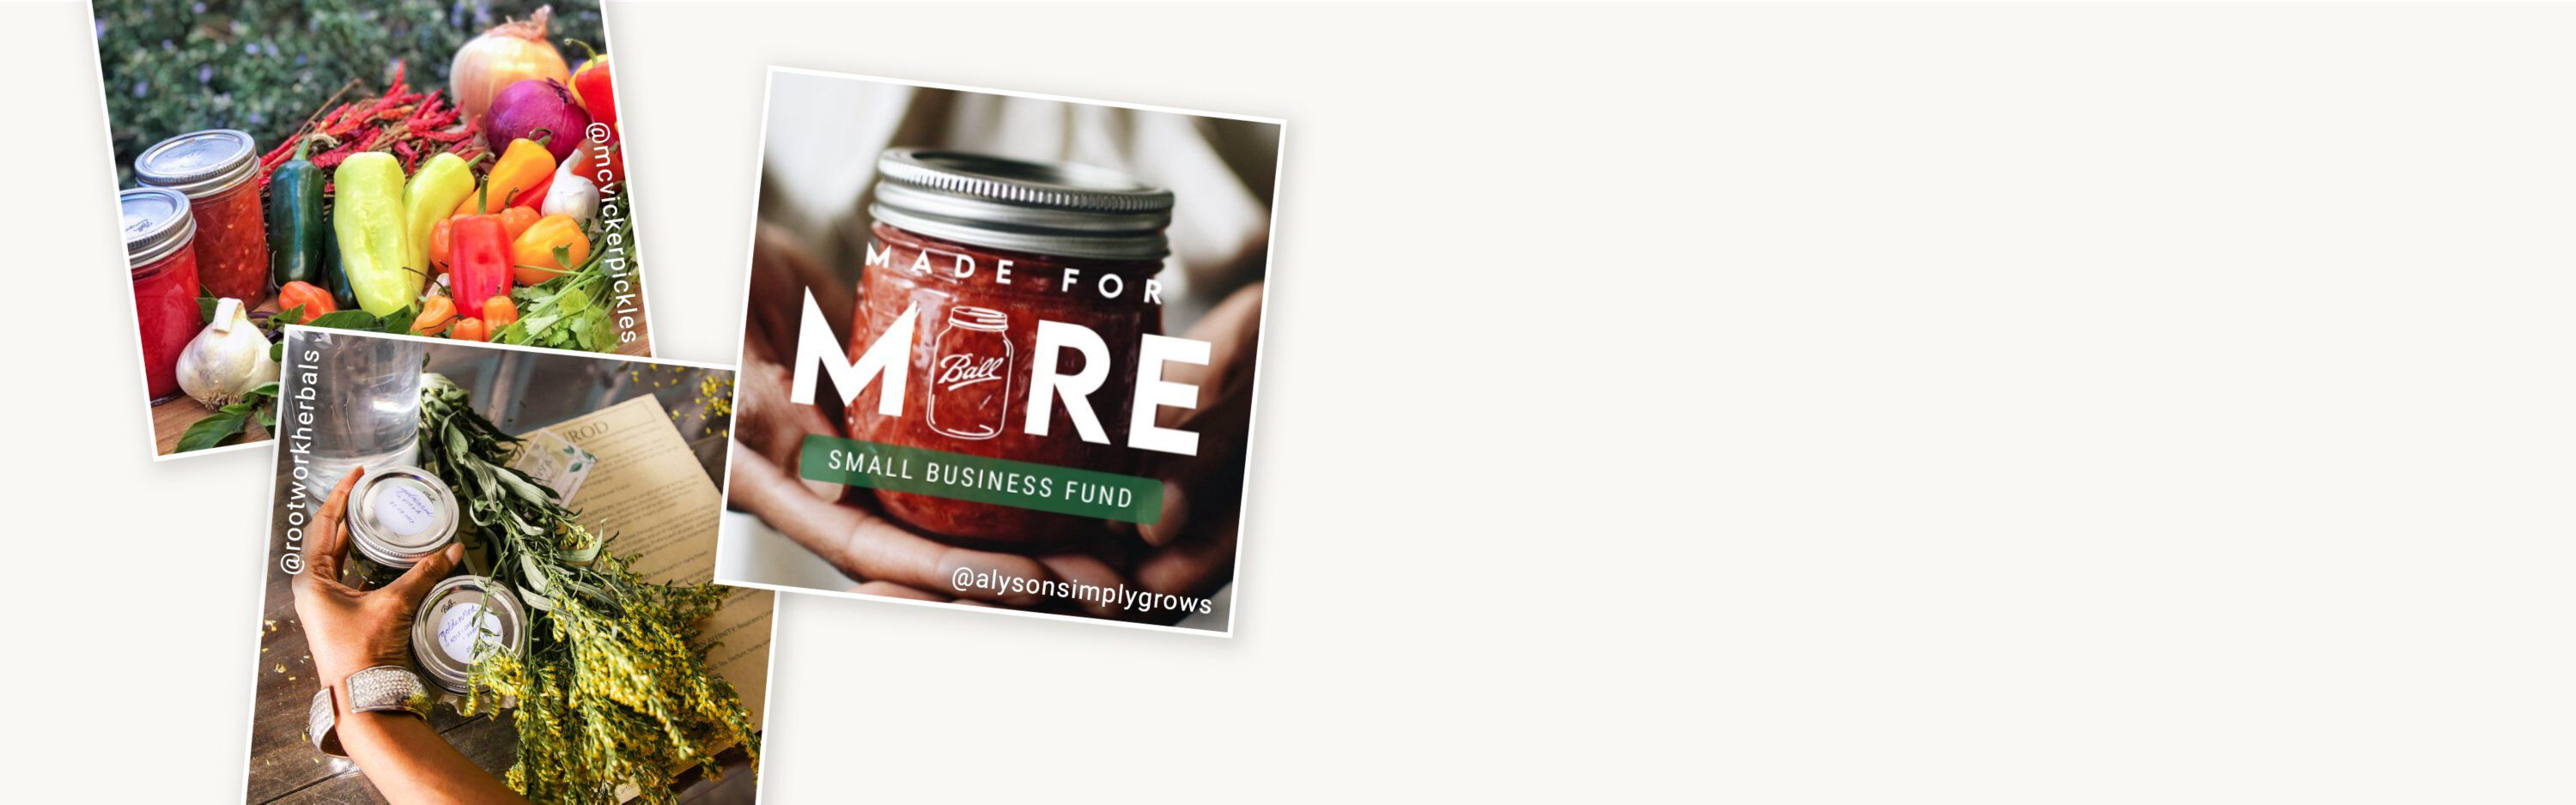 made for more small business fund canning instagram collage banner